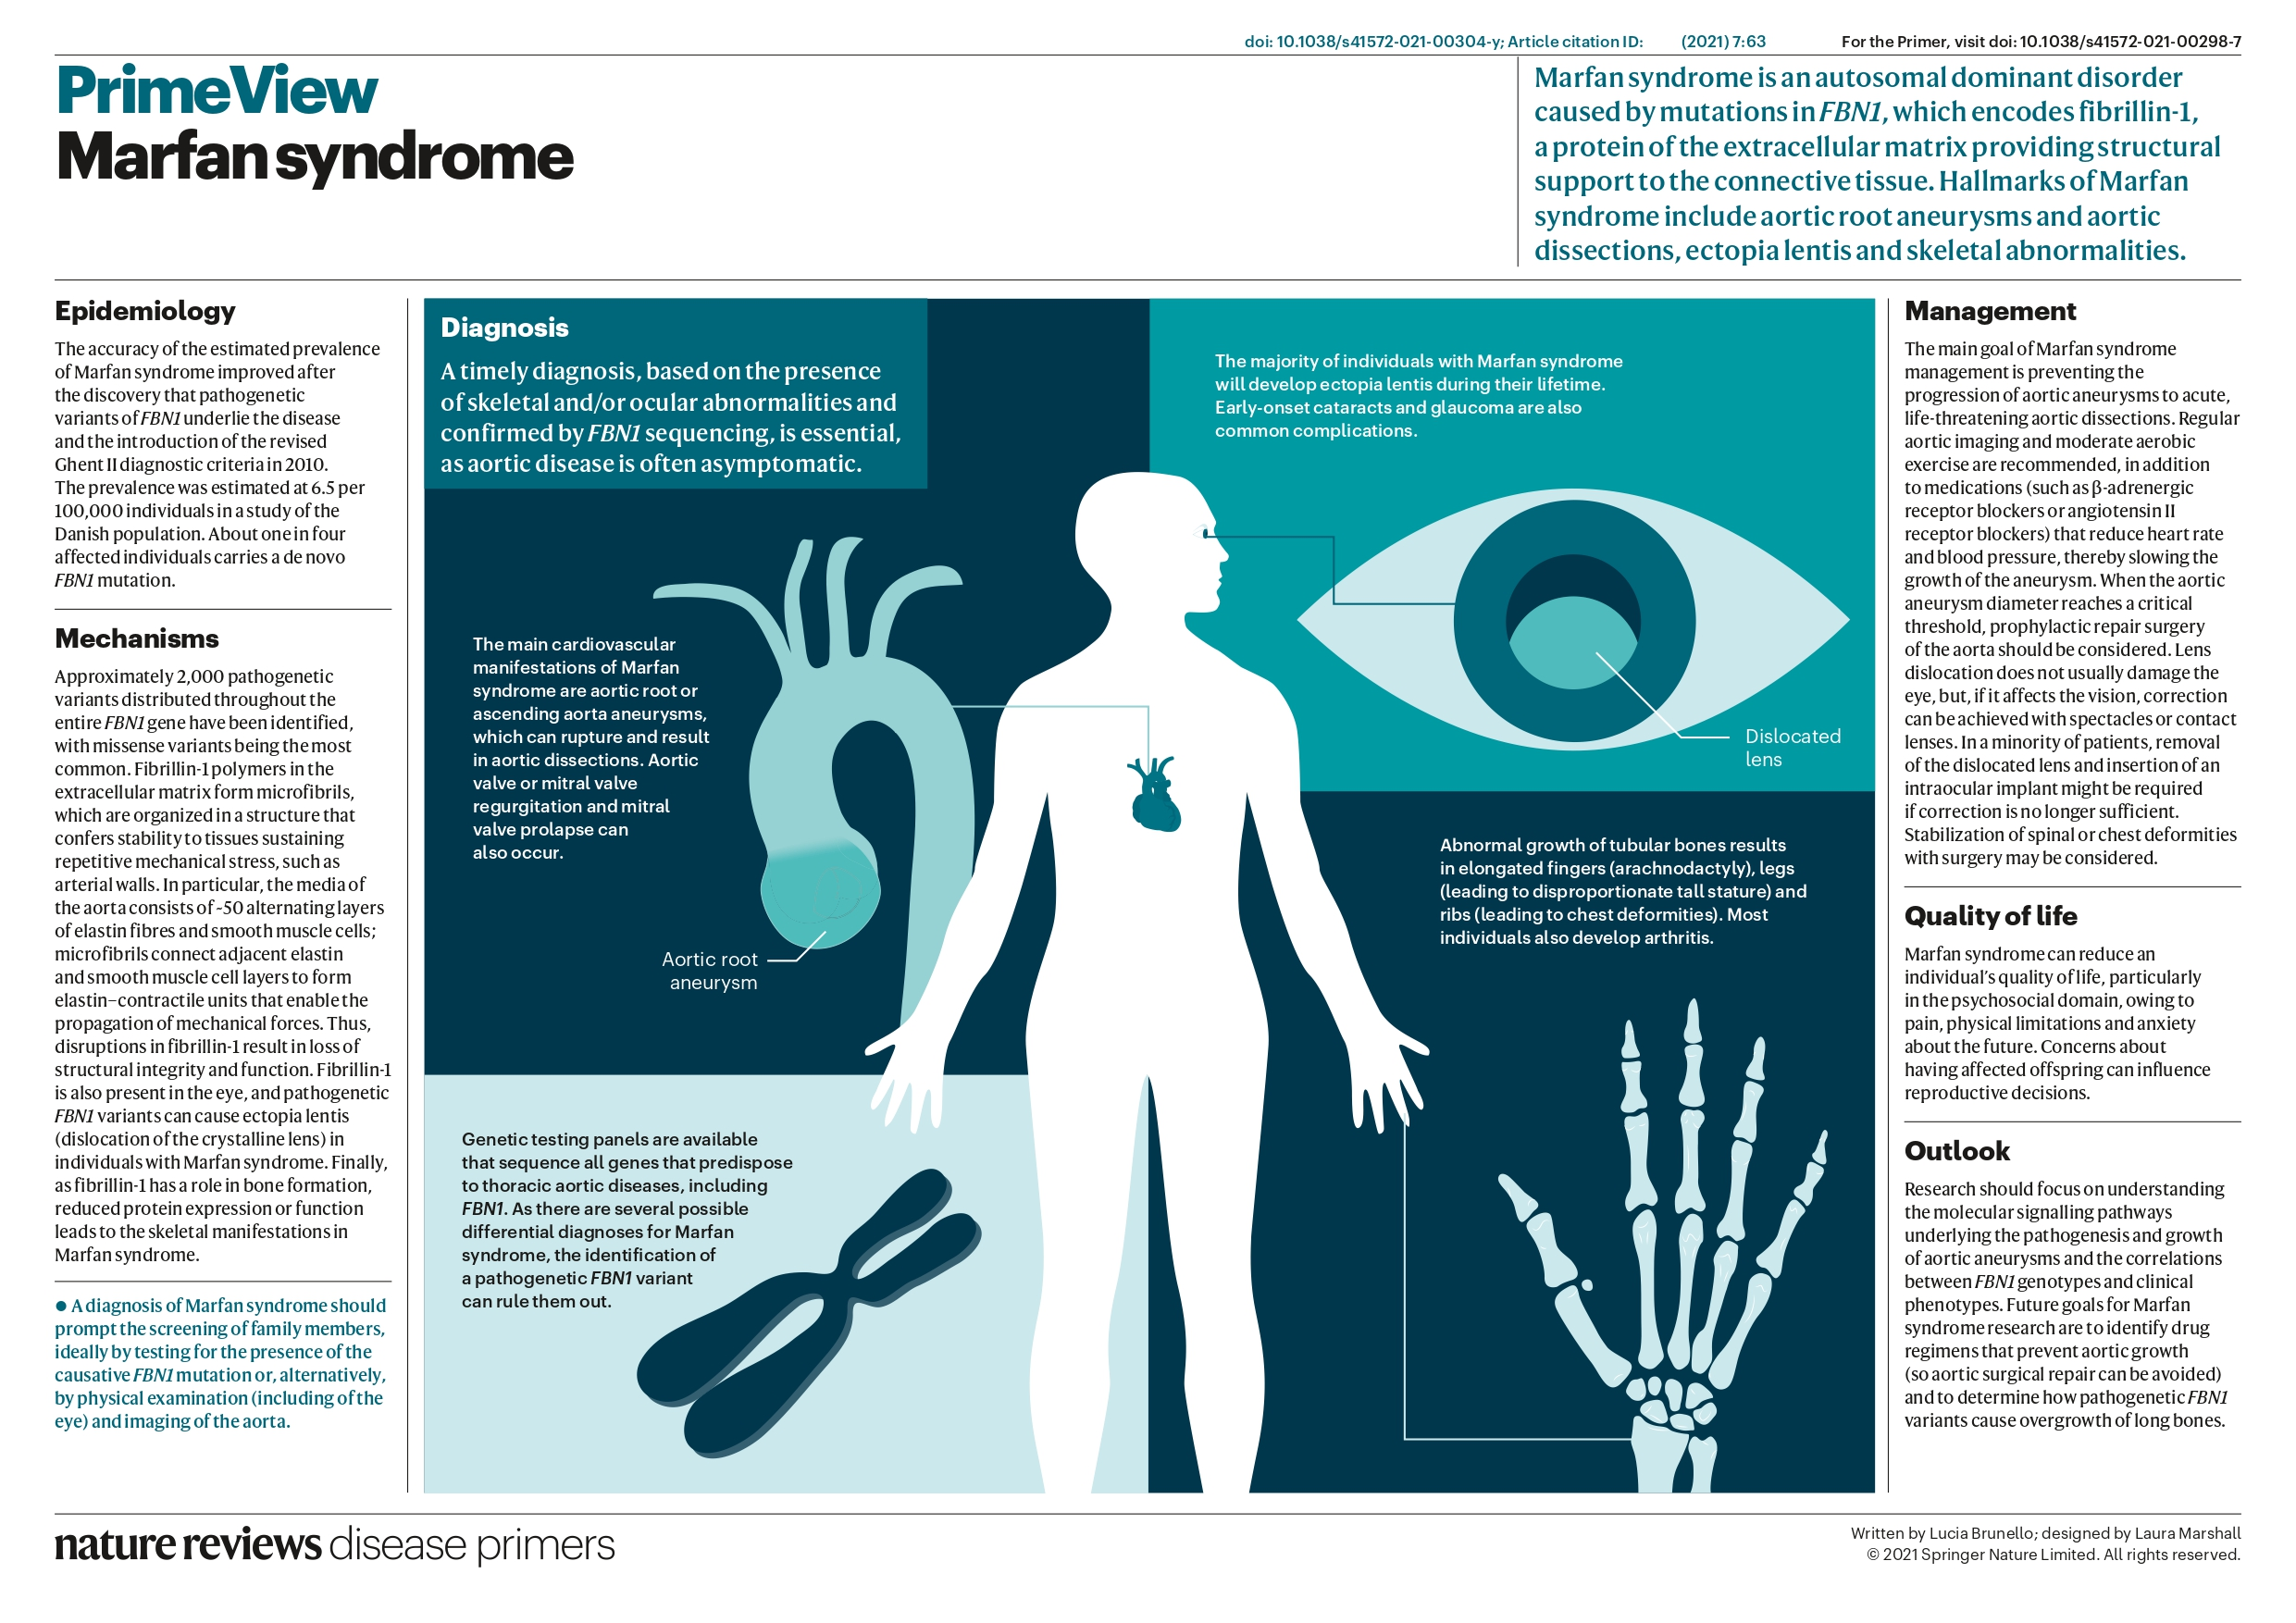 New Nature Reviews Disease Primer on Marfan syndrome by HTAD WG now online!